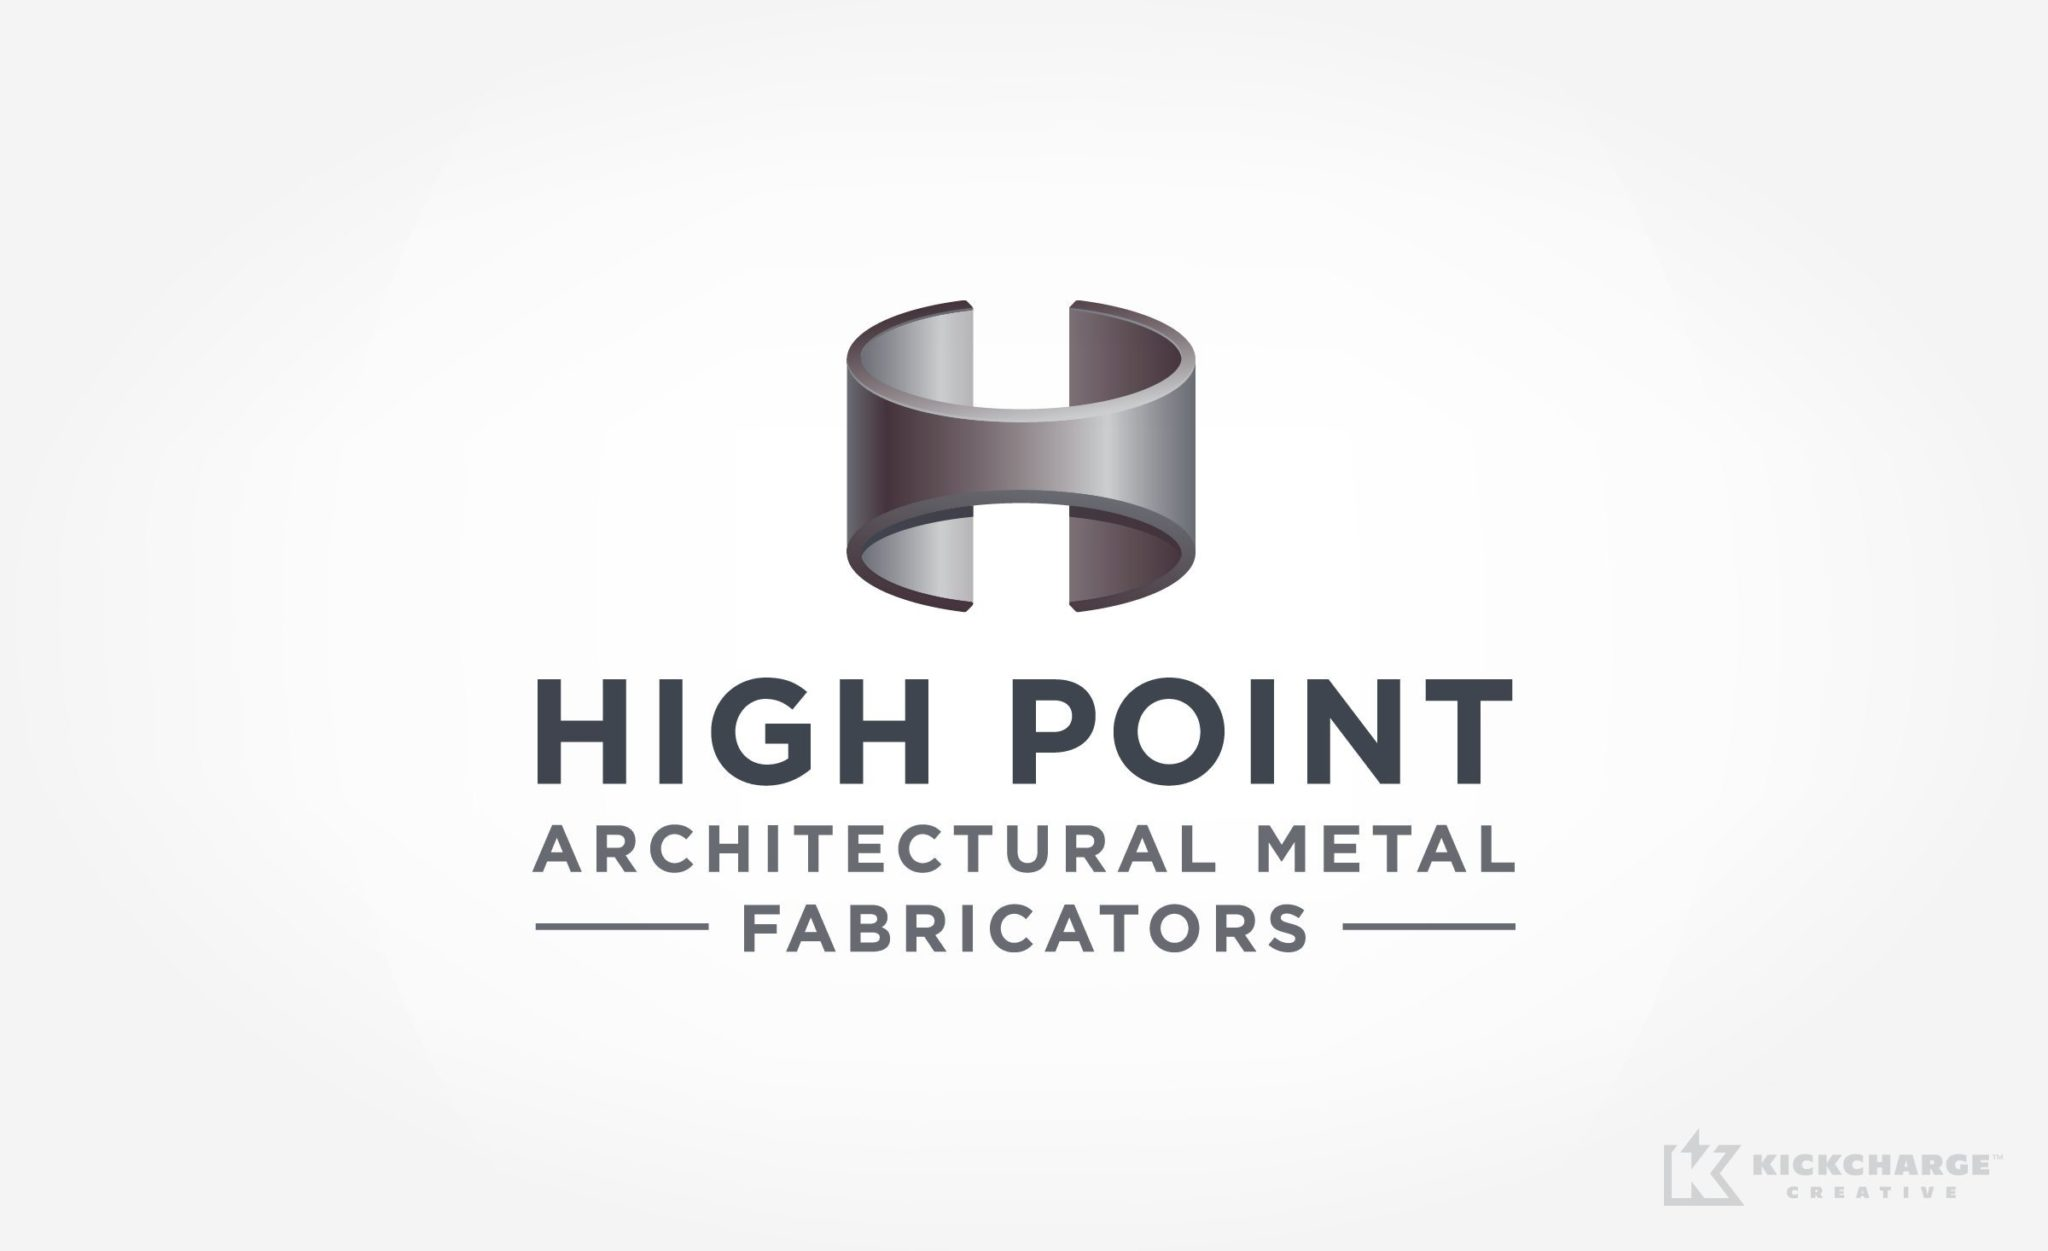 High Point Architectural Metal Fabricators